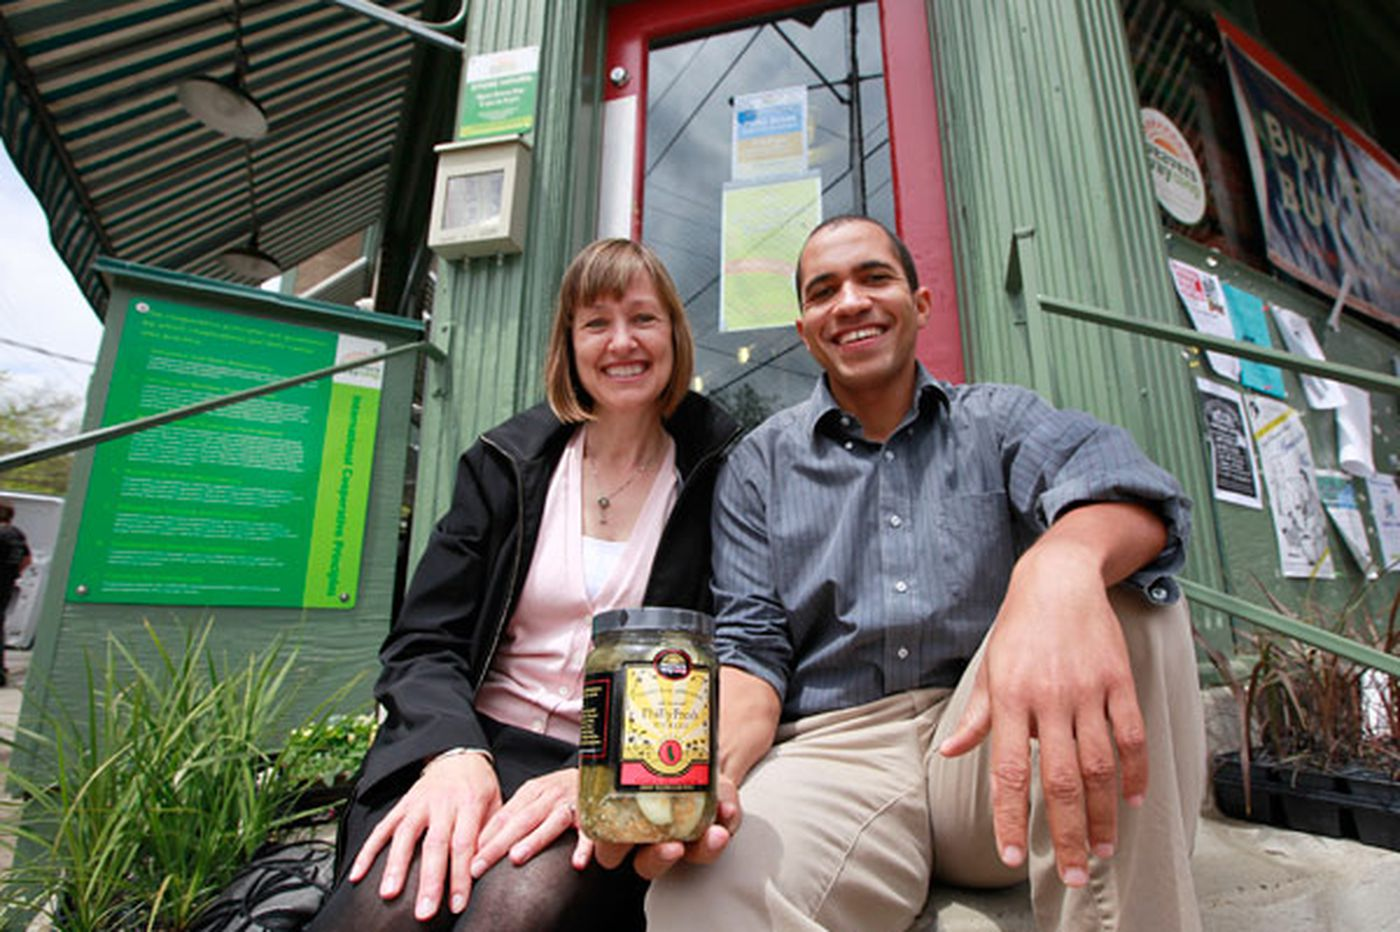 Diane Mastrull: A business fueled on pickle power